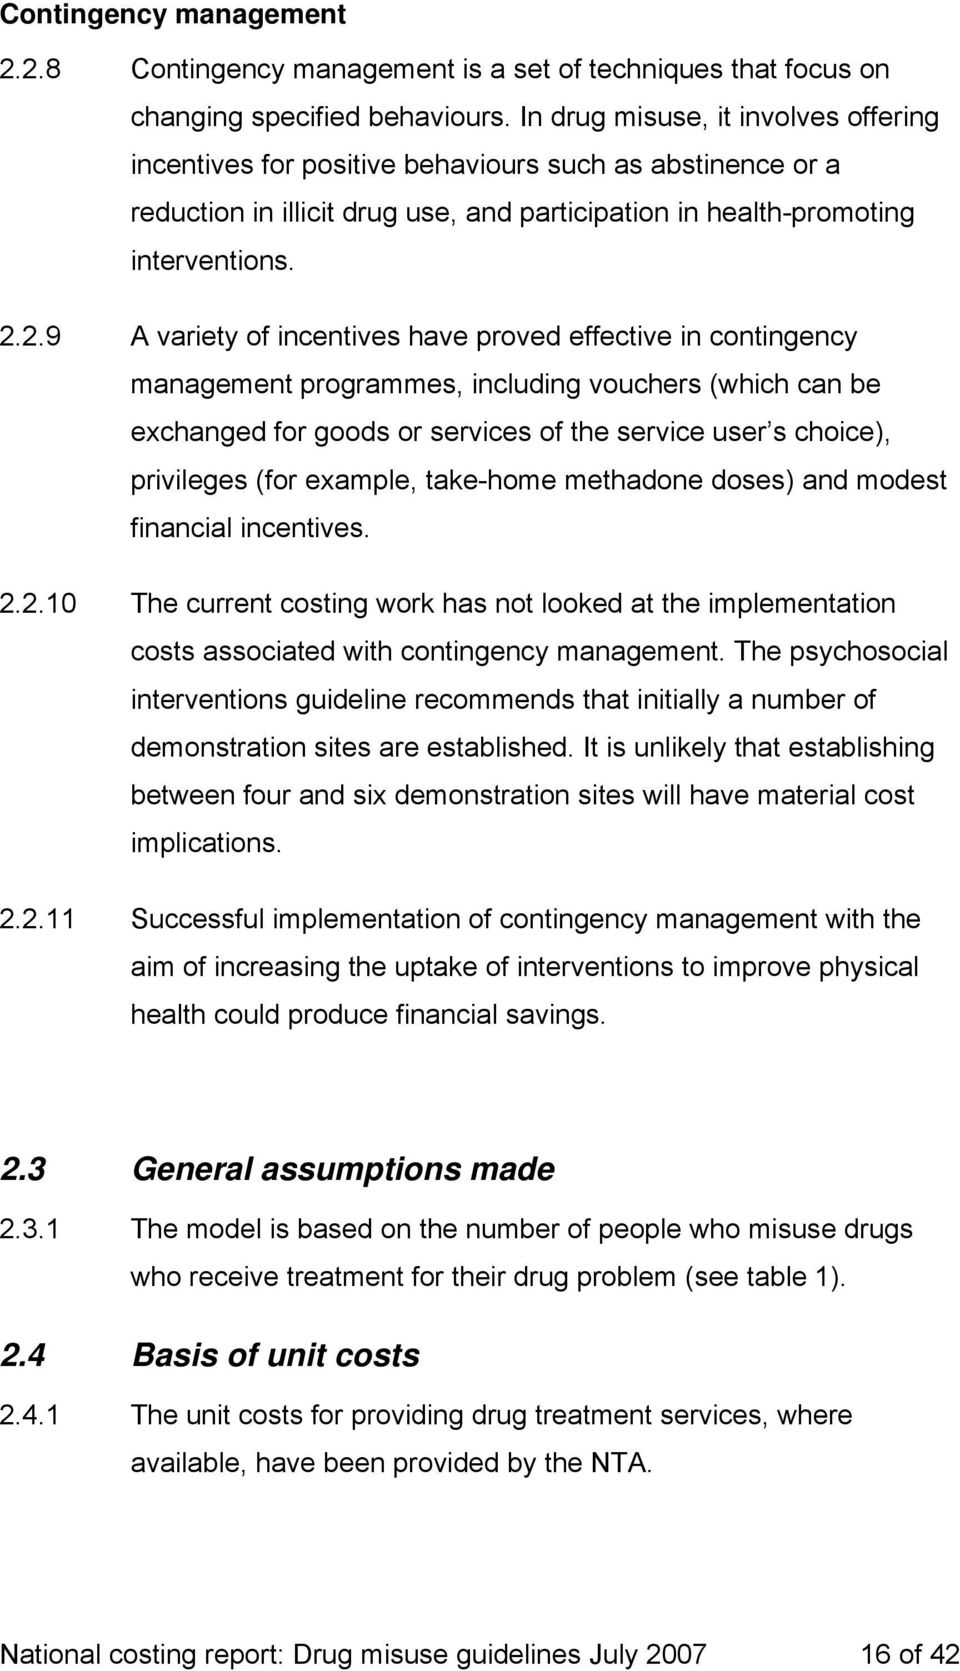 2.9 A variety of incentives have proved effective in contingency management programmes, including vouchers (which can be exchanged for goods or services of the service user s choice), privileges (for